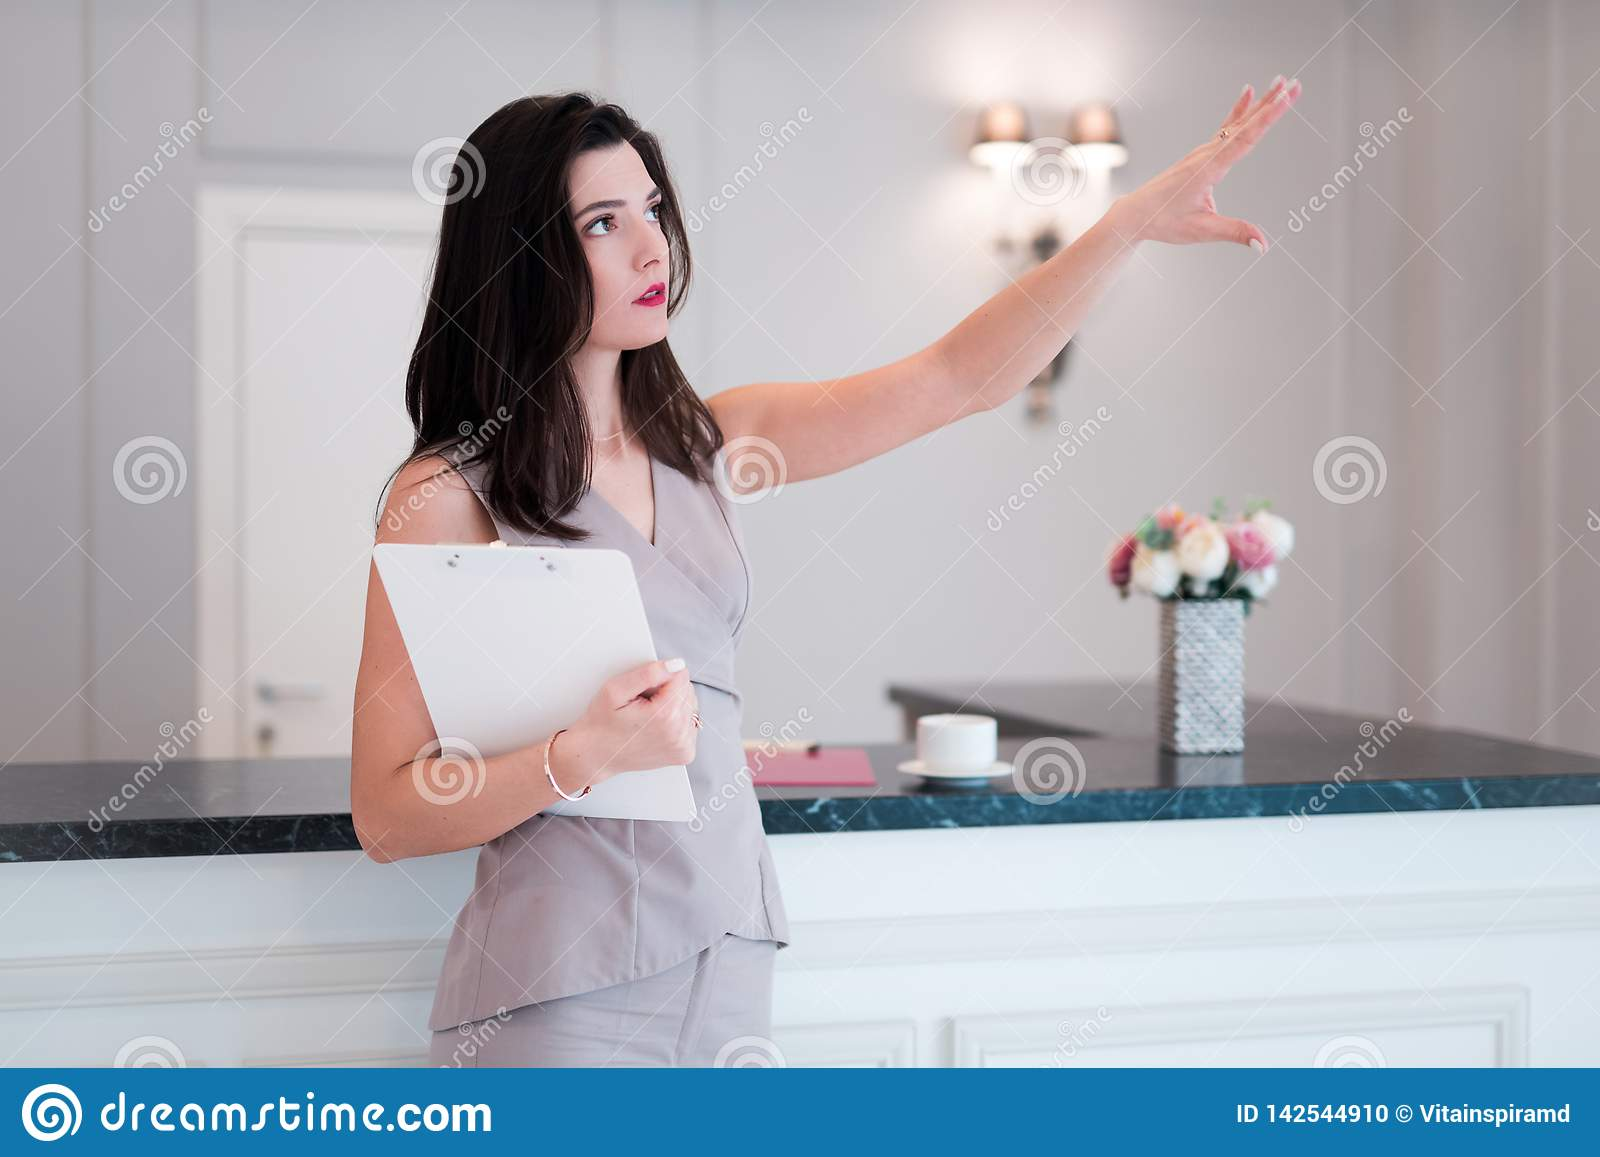 Woman realtor proposes to visit flat or apartment. Agent shows with hand something apartment.